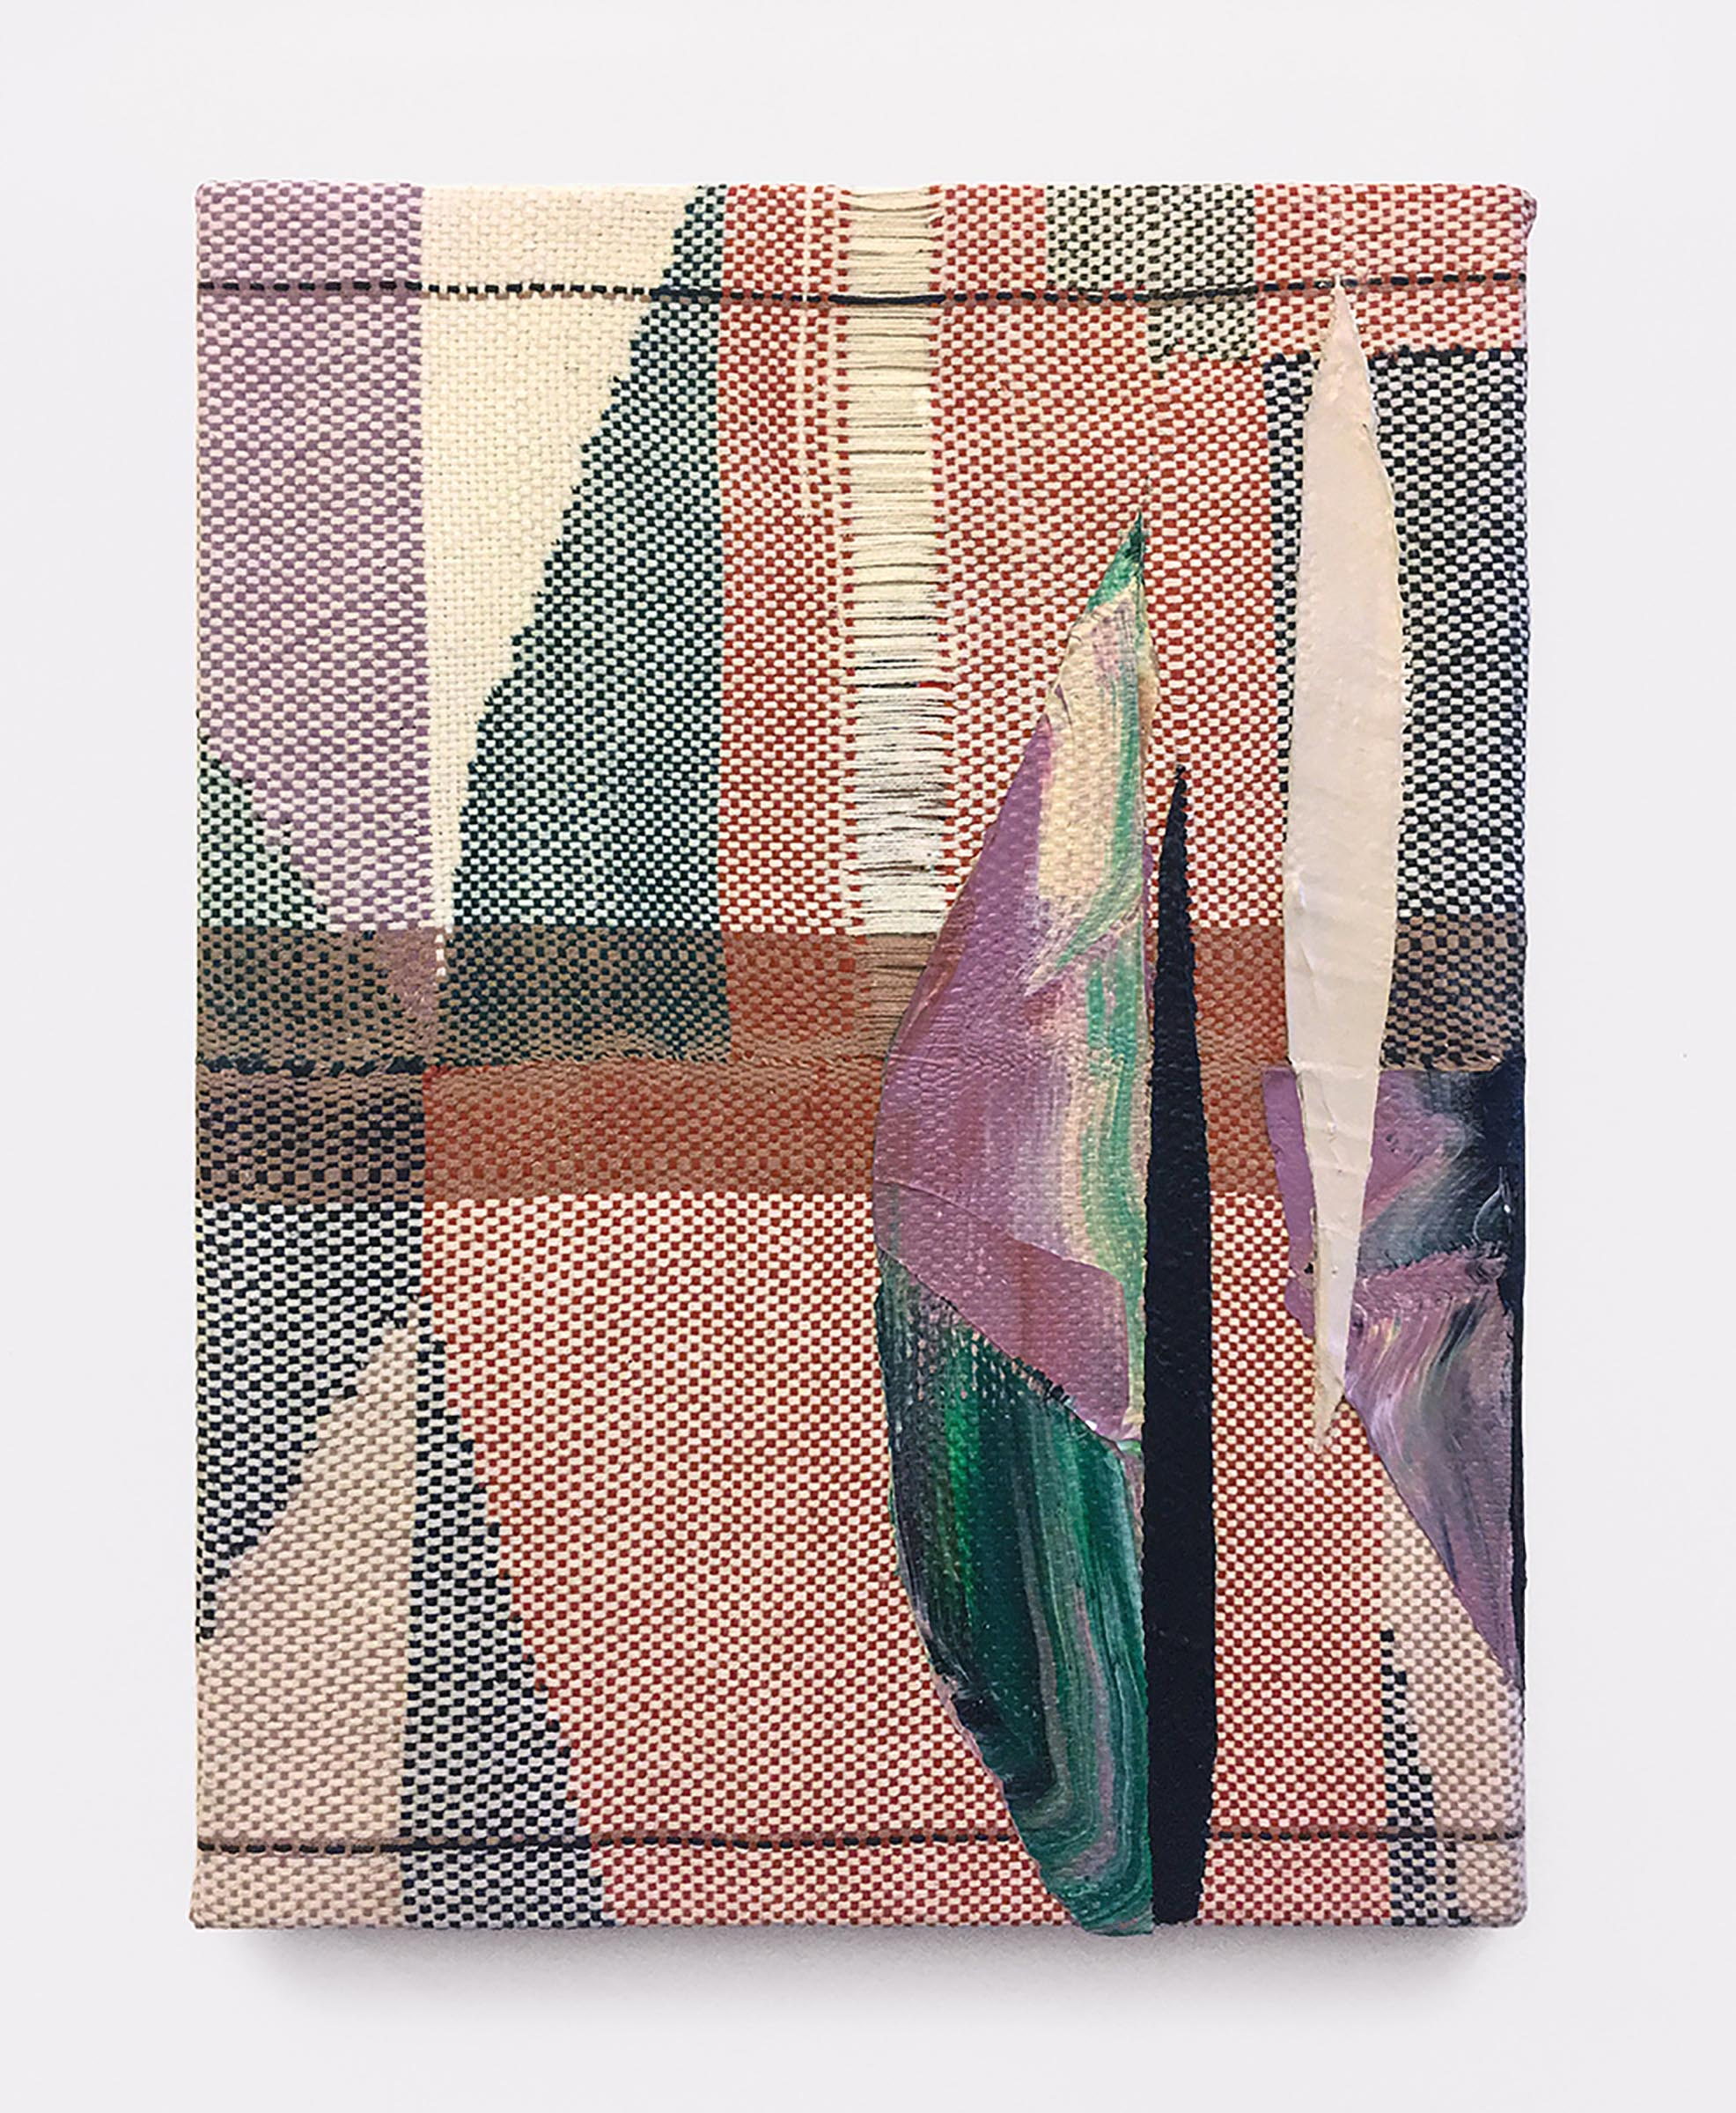 Mary Raap, False Dawn, Handwoven cotton and silk, acrylic over canvas, 16 x 12 x 1.5 in, 2019